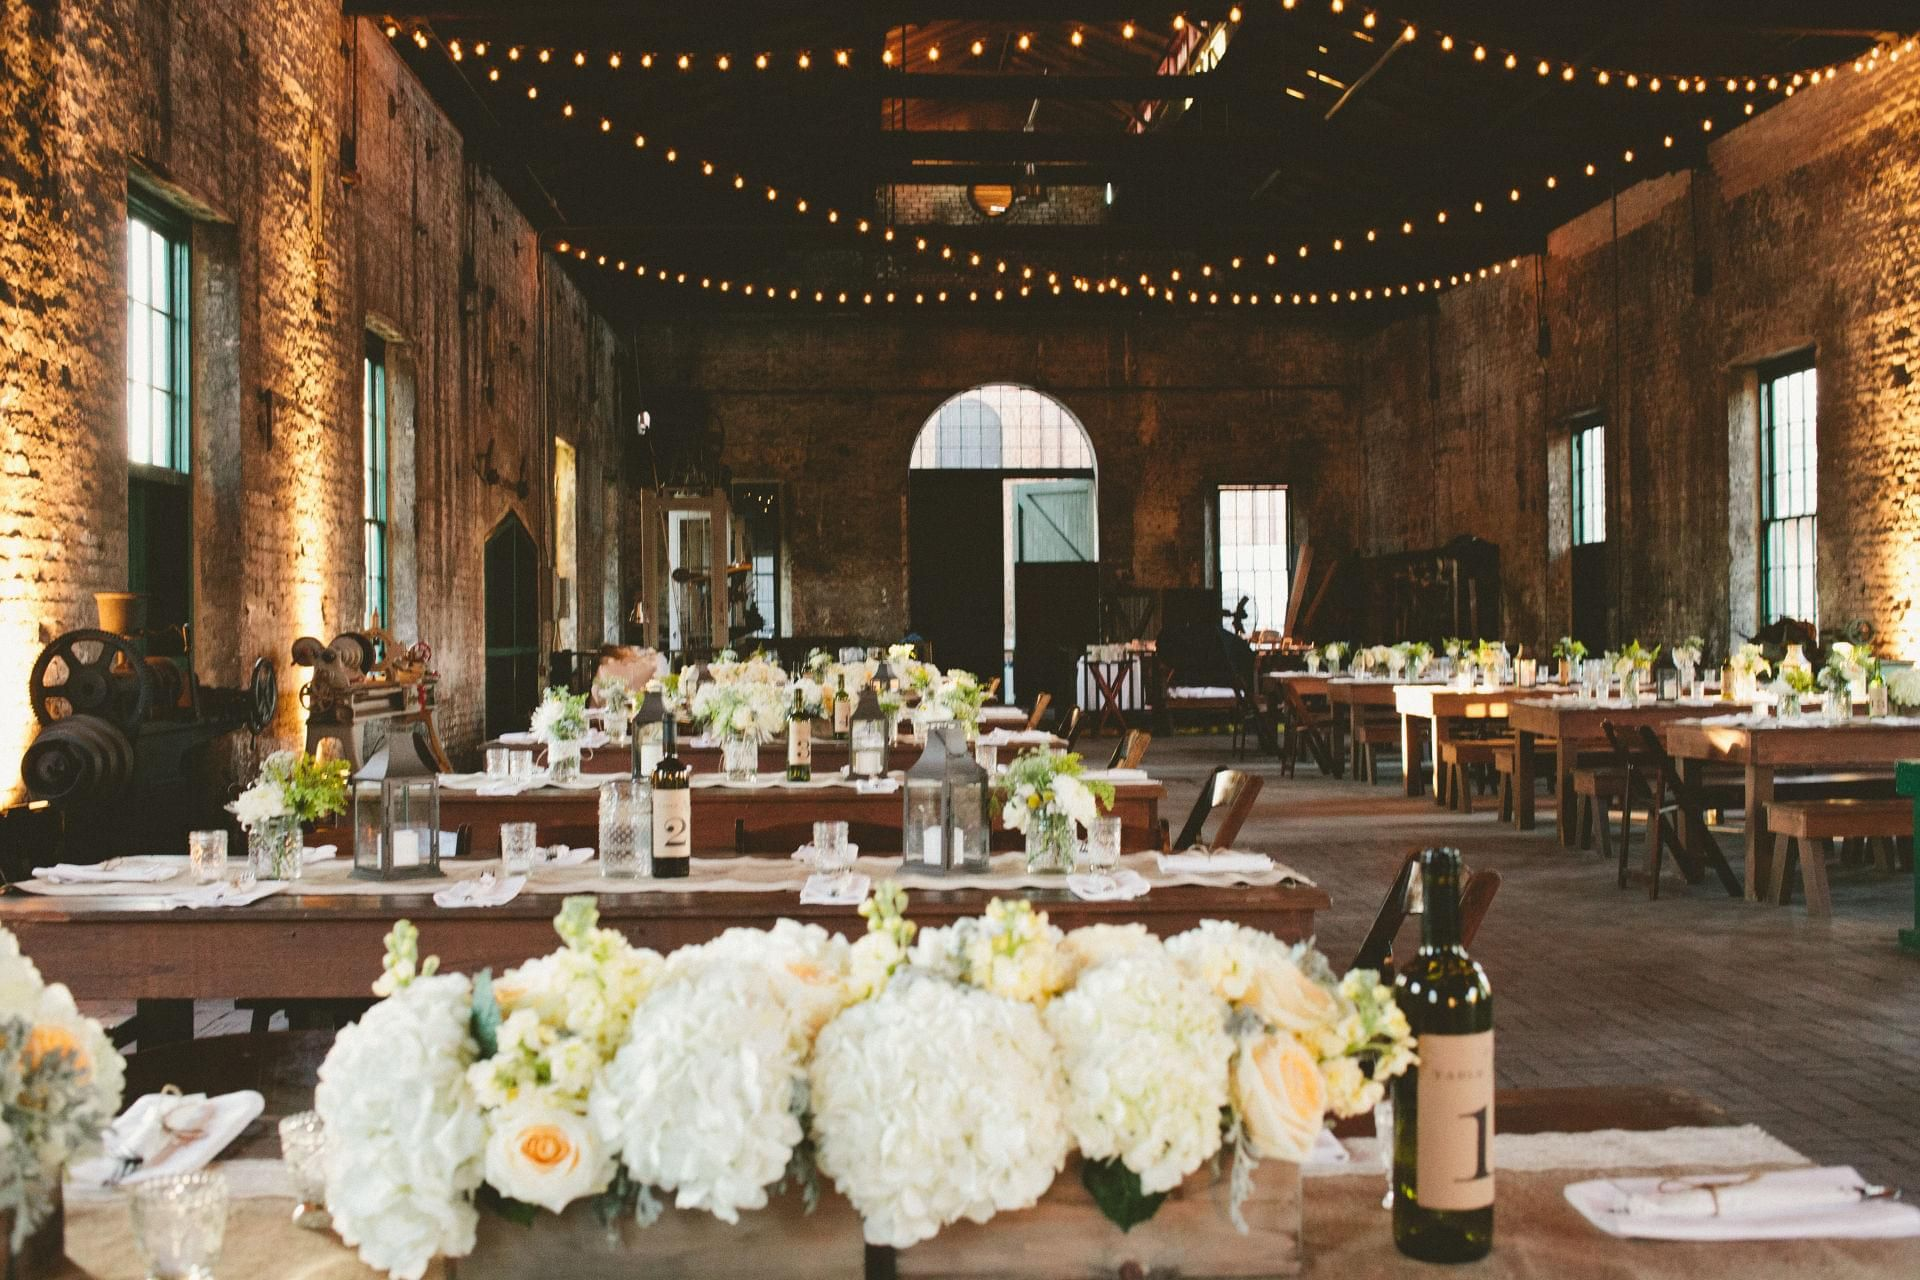 See Georgia State Railroad Museum A Beautiful Historic Wedding Venue Find Prices Detailed Info And Photos For Savannah Reception Locations